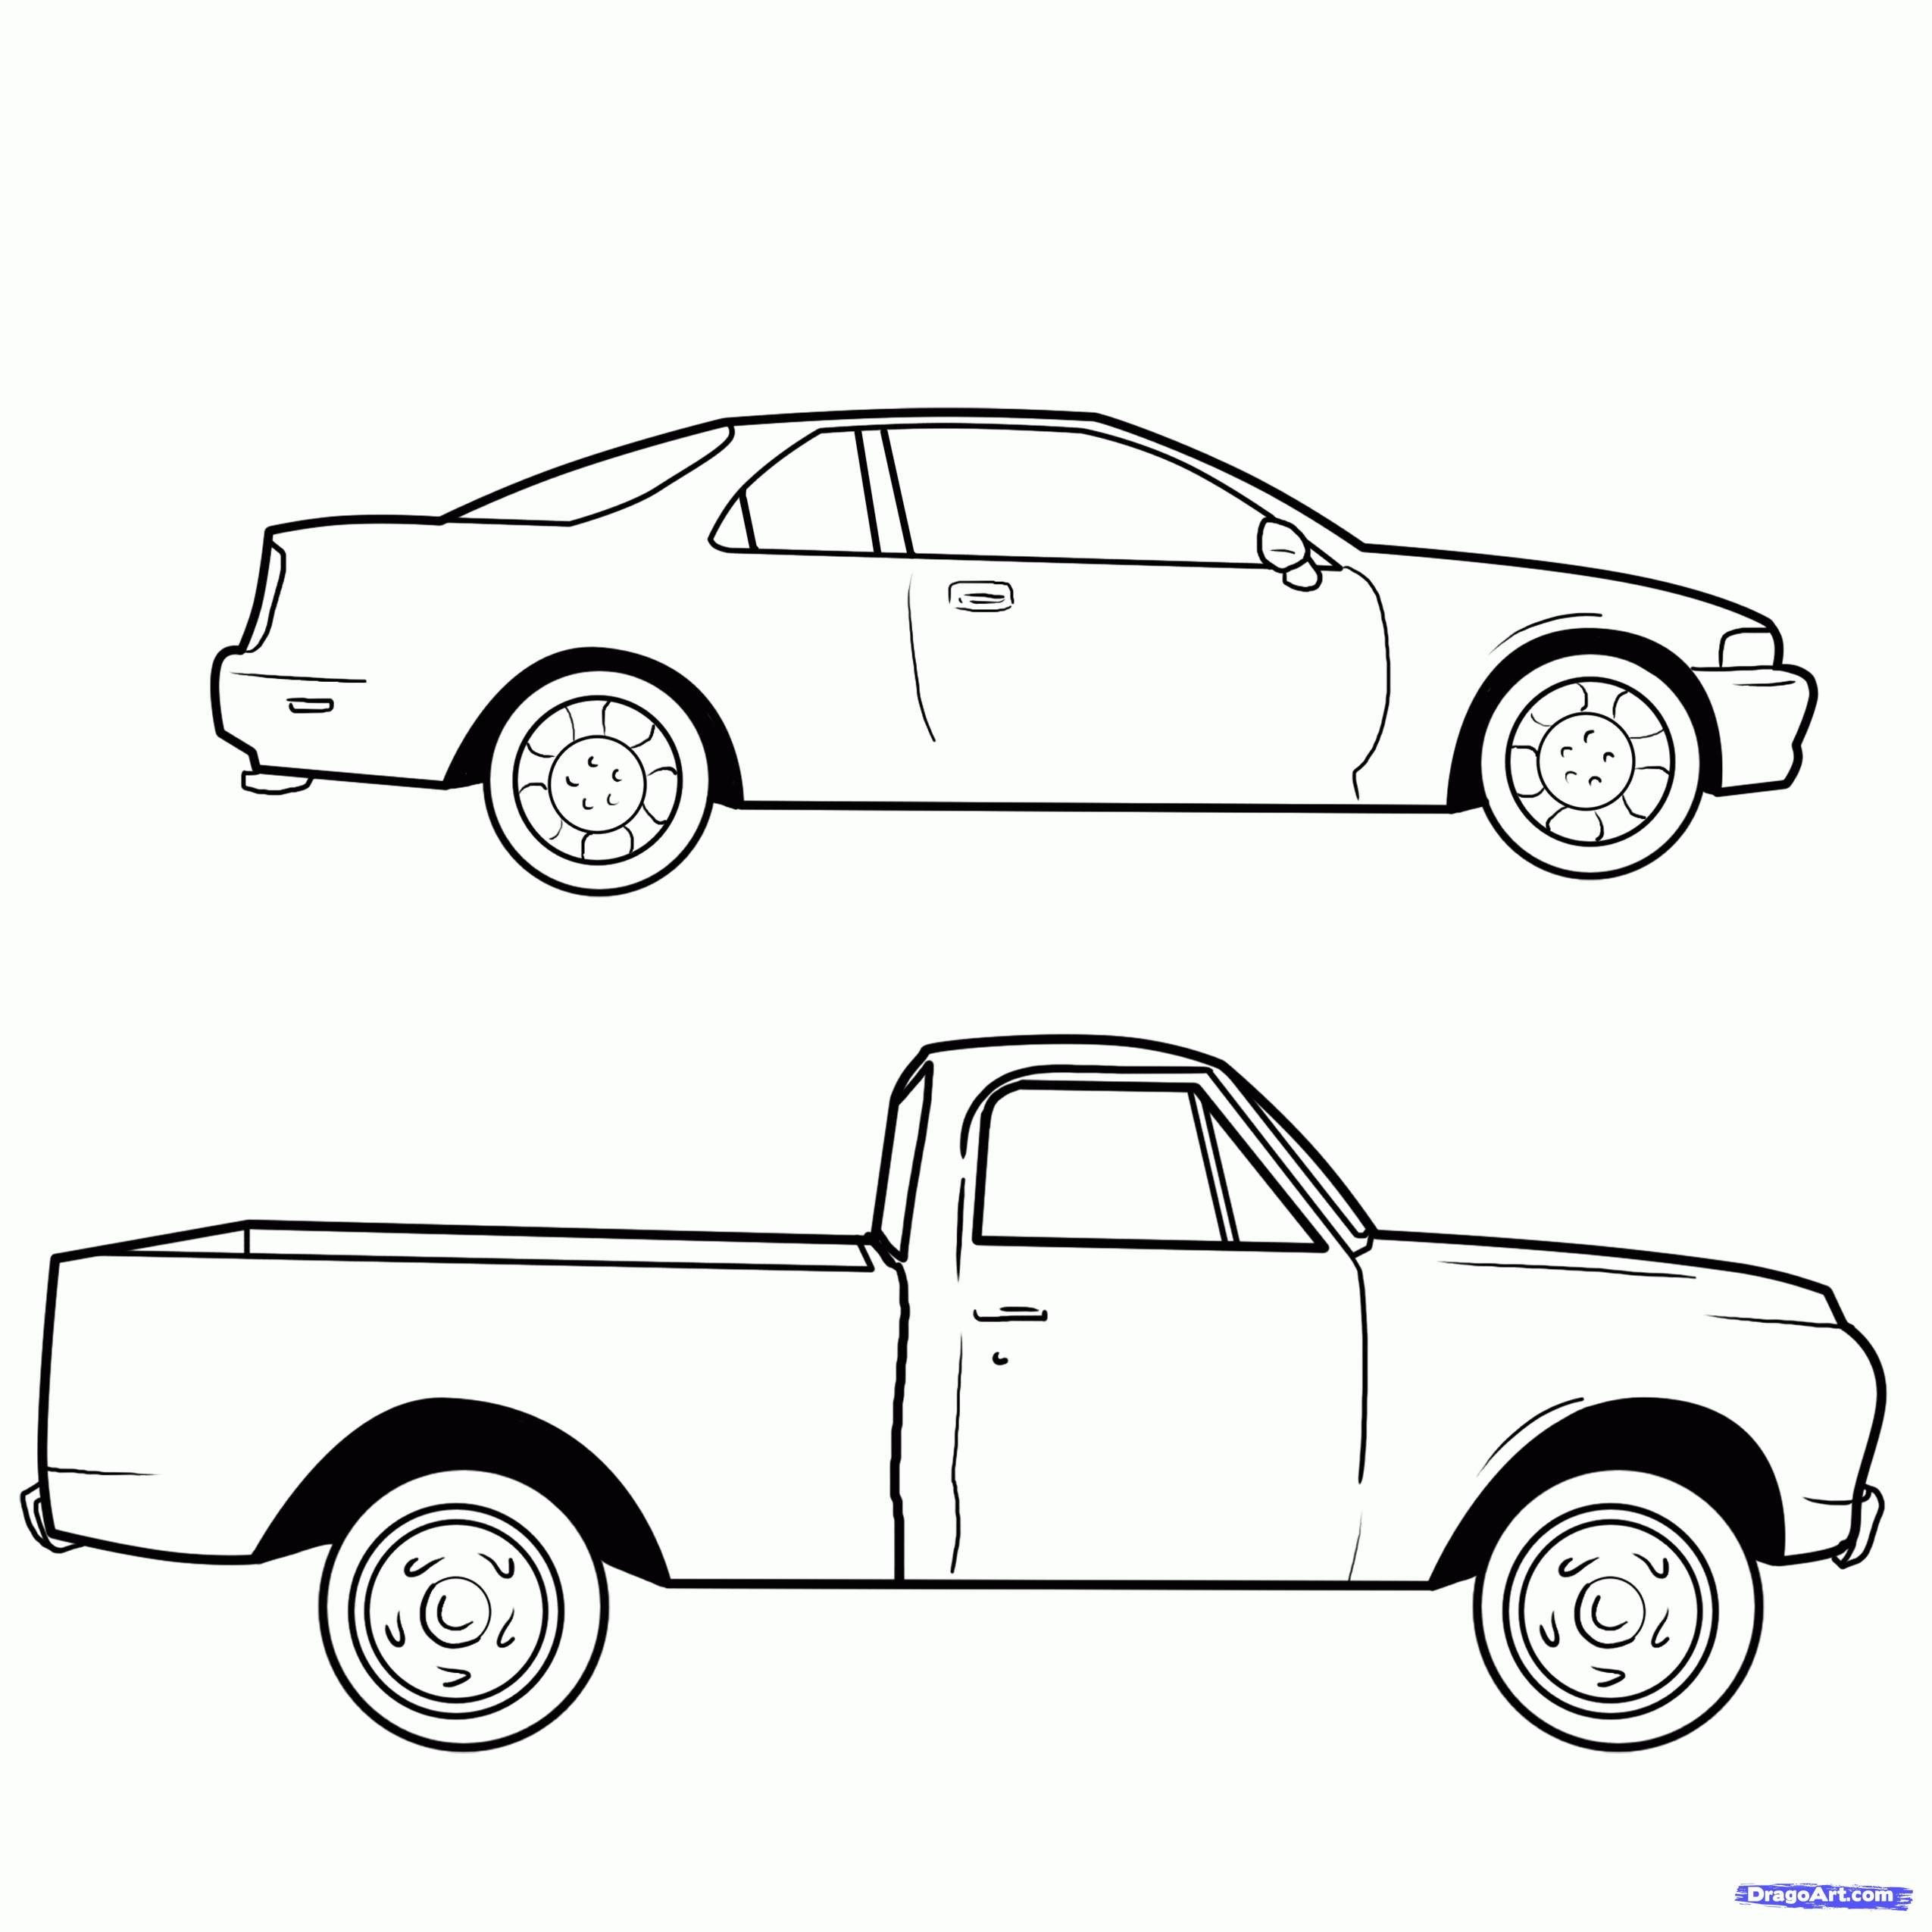 New How To Draw A Simple Car Diagram Wiringdiagram Diagramming Diagramm Visuals Visualisation Graphical Free Clip Art Drawings Car Drawings